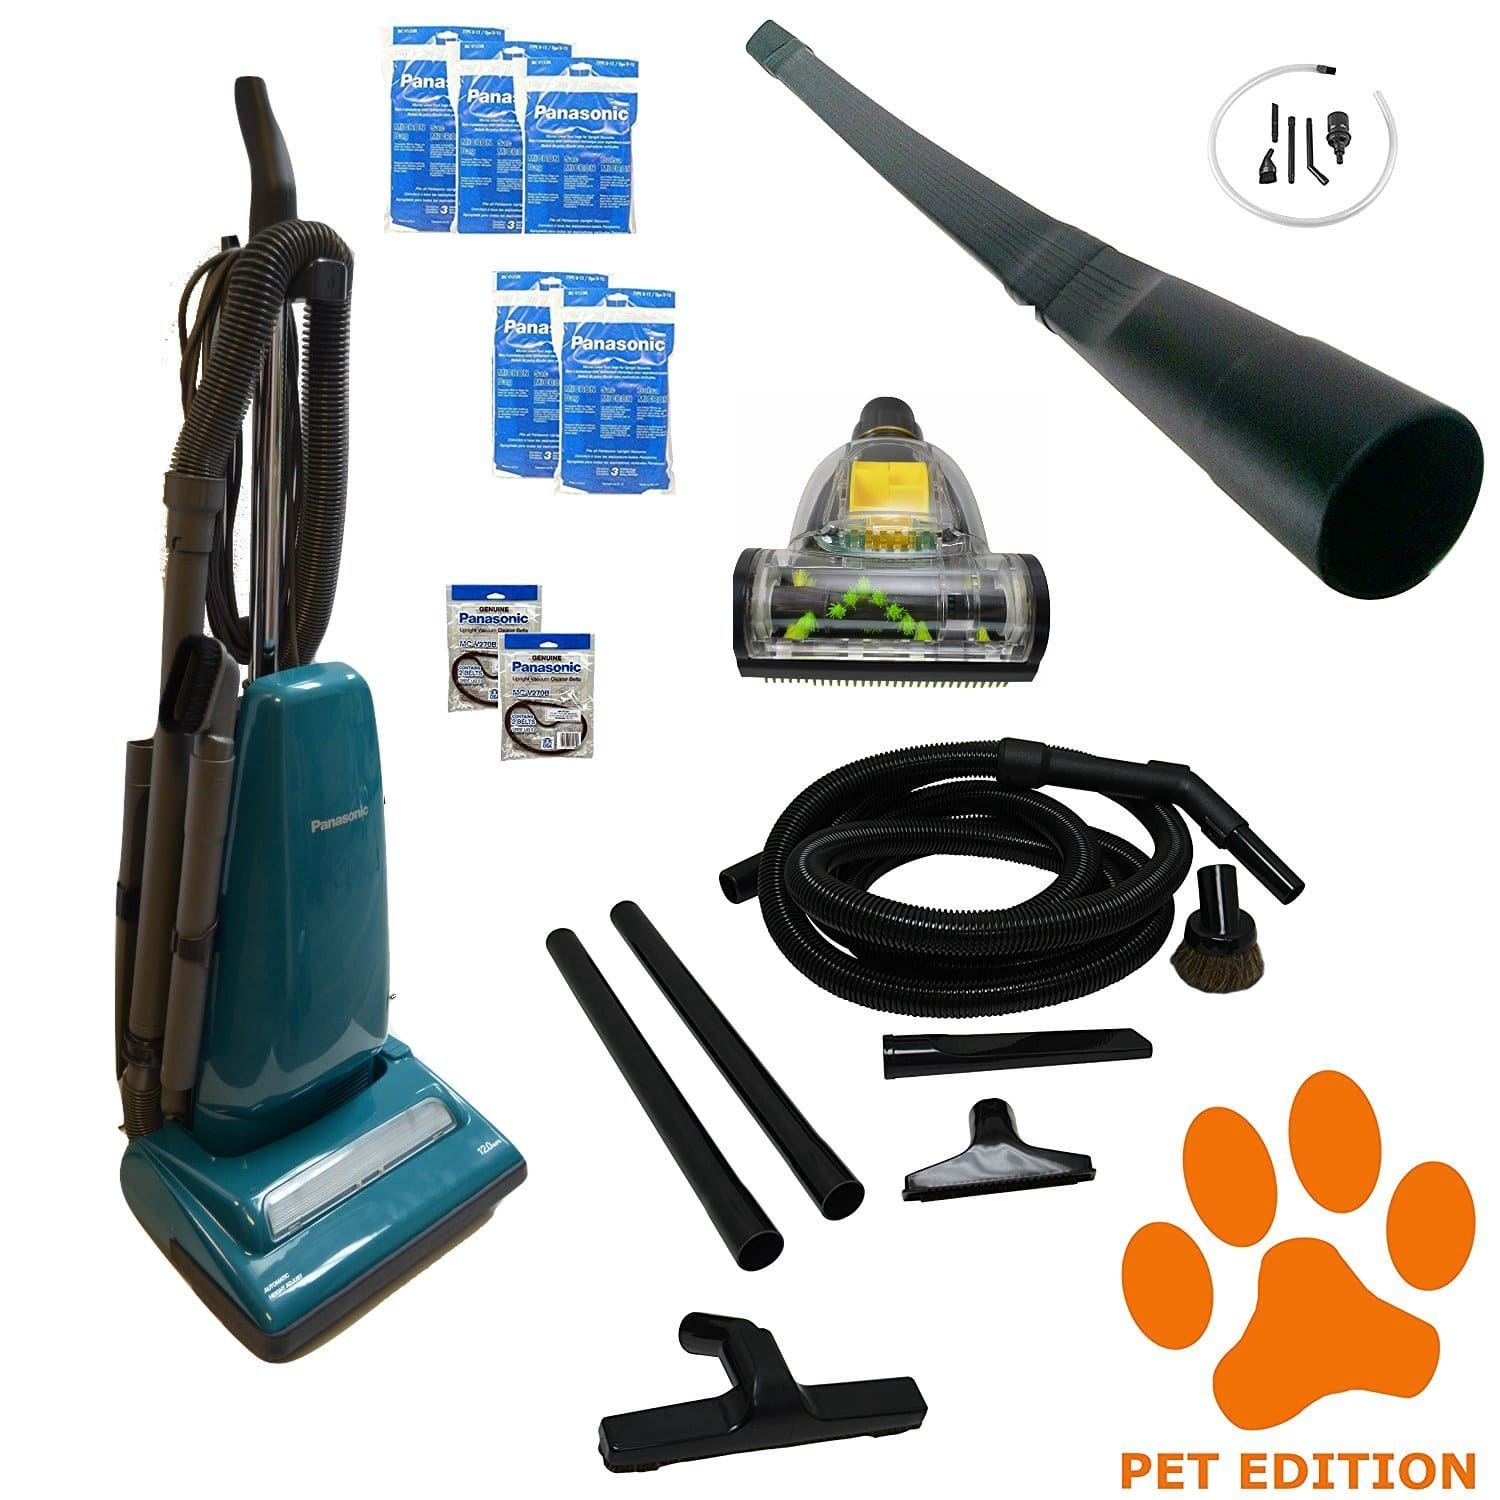 Panasonic Vacuum Cleaner Have Many Attachments For Canister